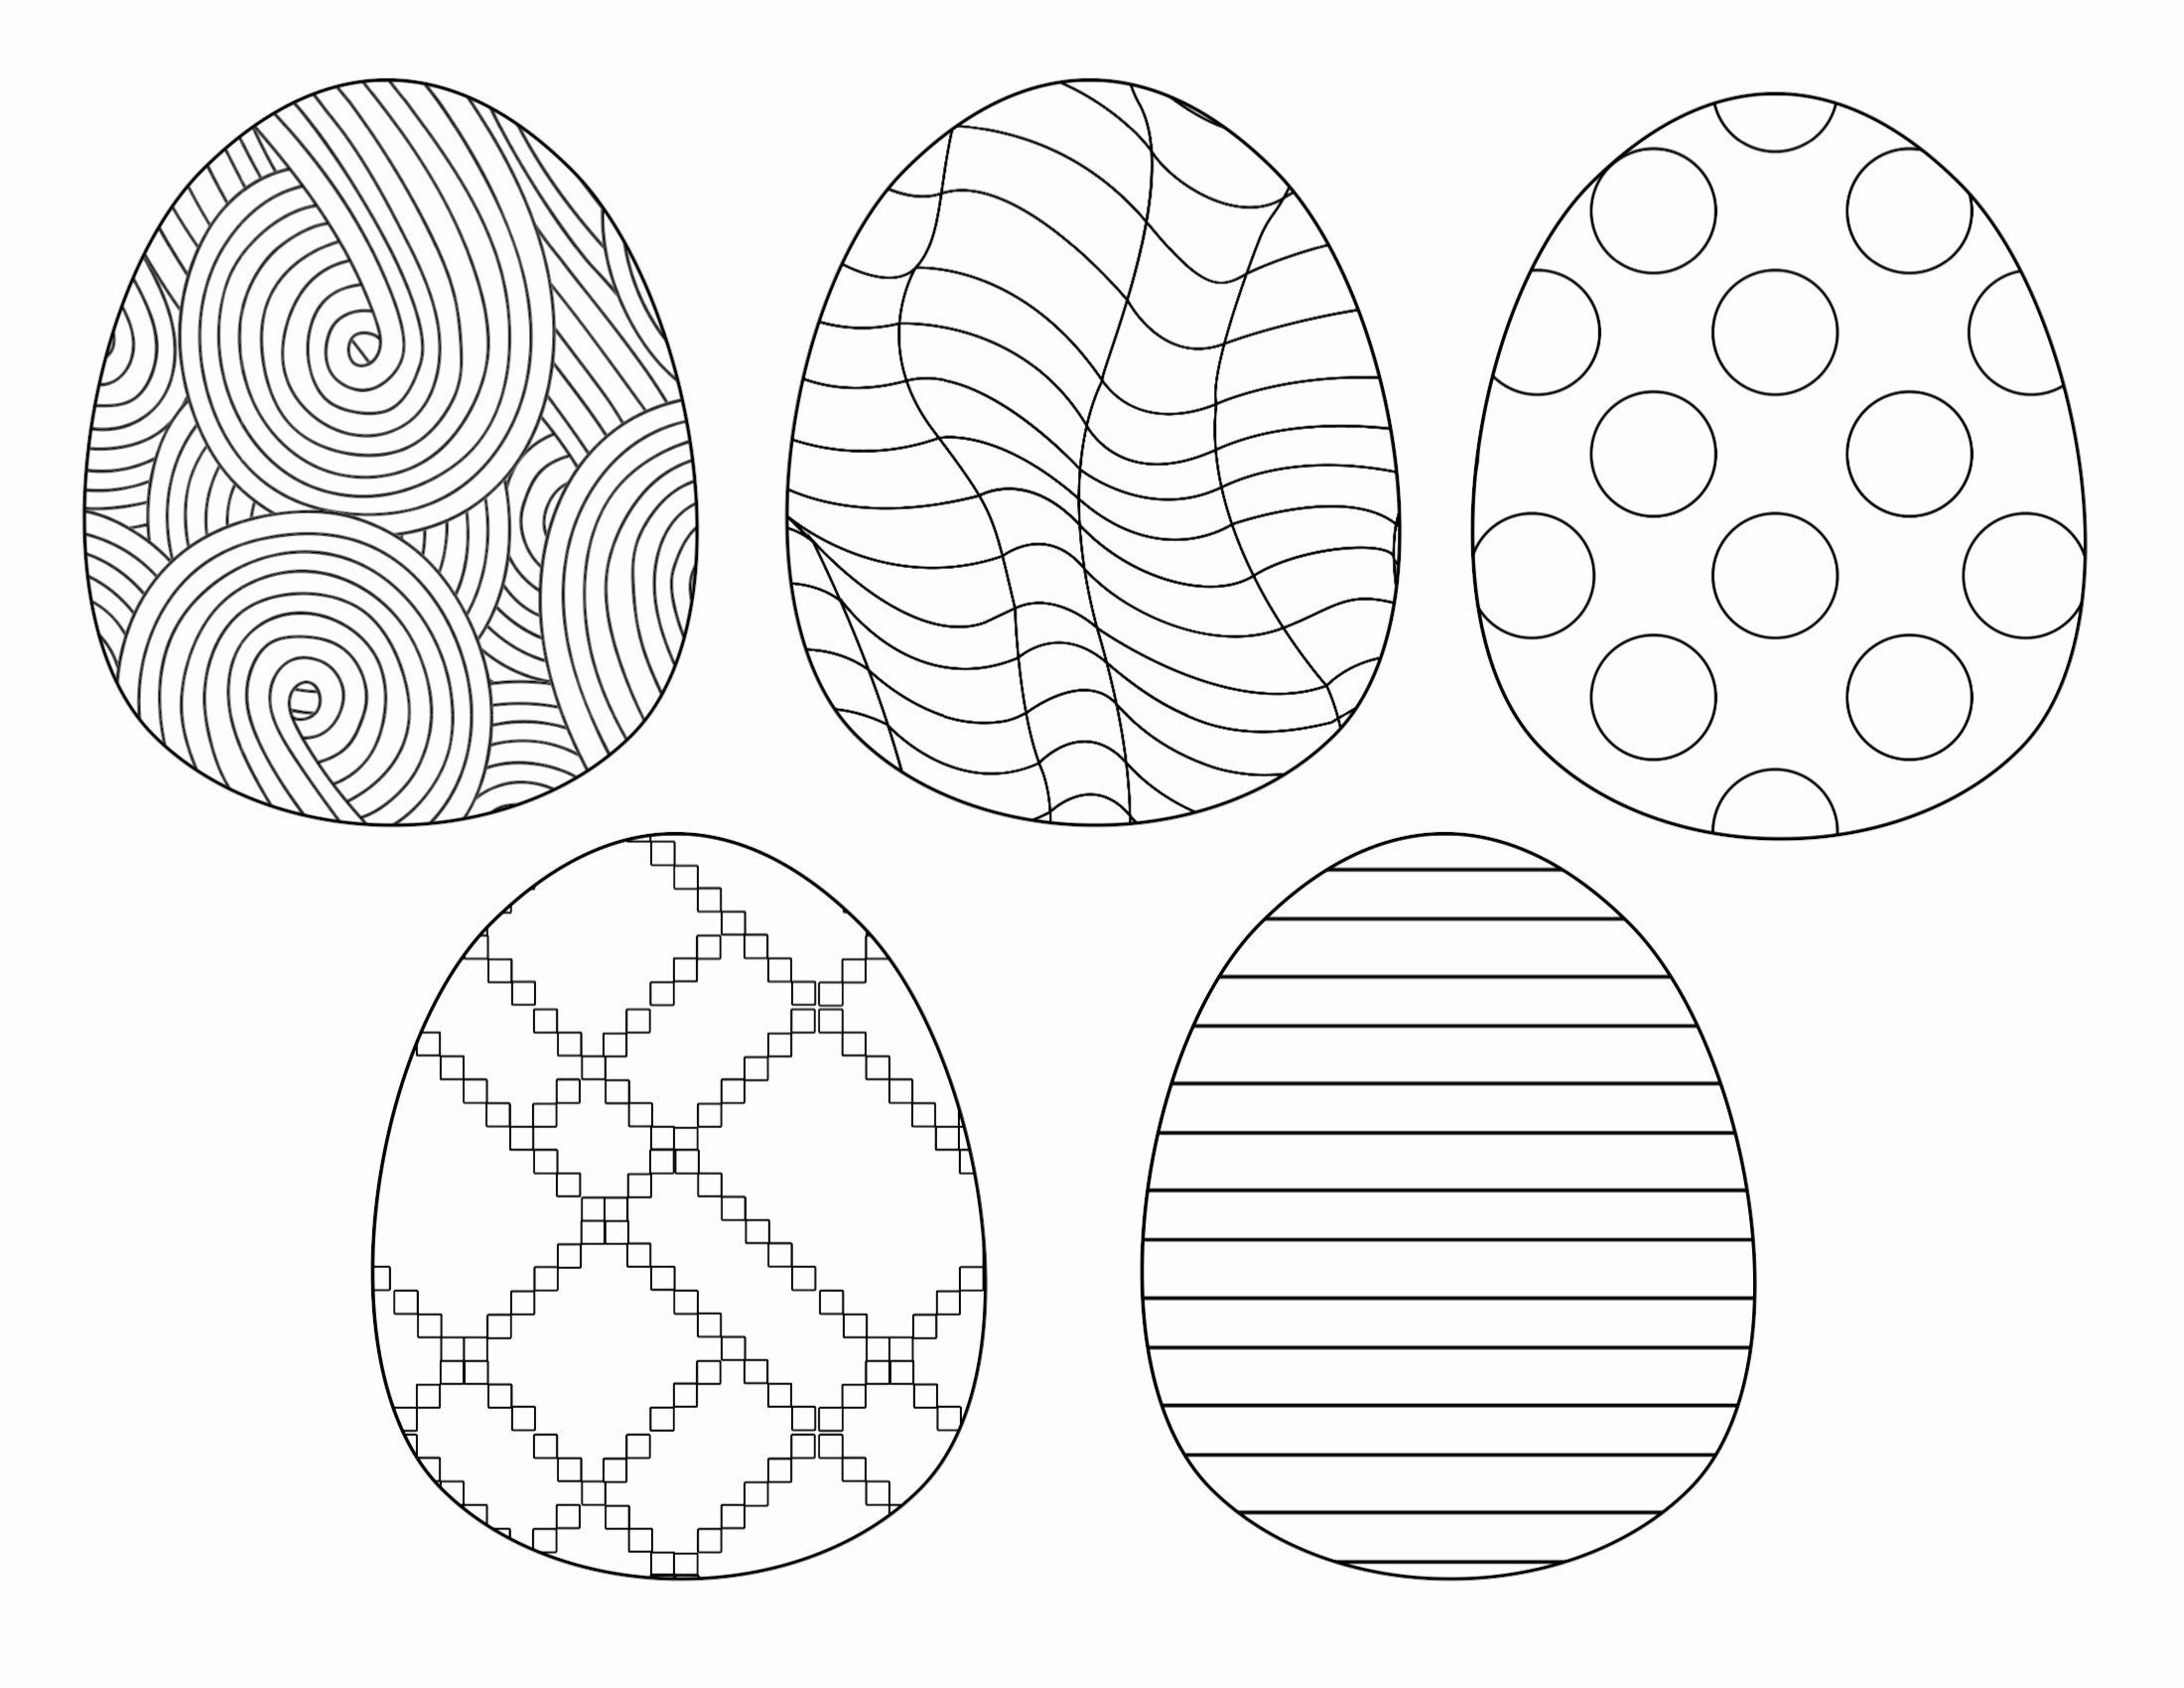 Coloring Letters To Print Elegant Cute Easter Coloring Pages Album Sabadaphnecottage In 2020 Easter Coloring Book Bunny Coloring Pages Easter Coloring Pages